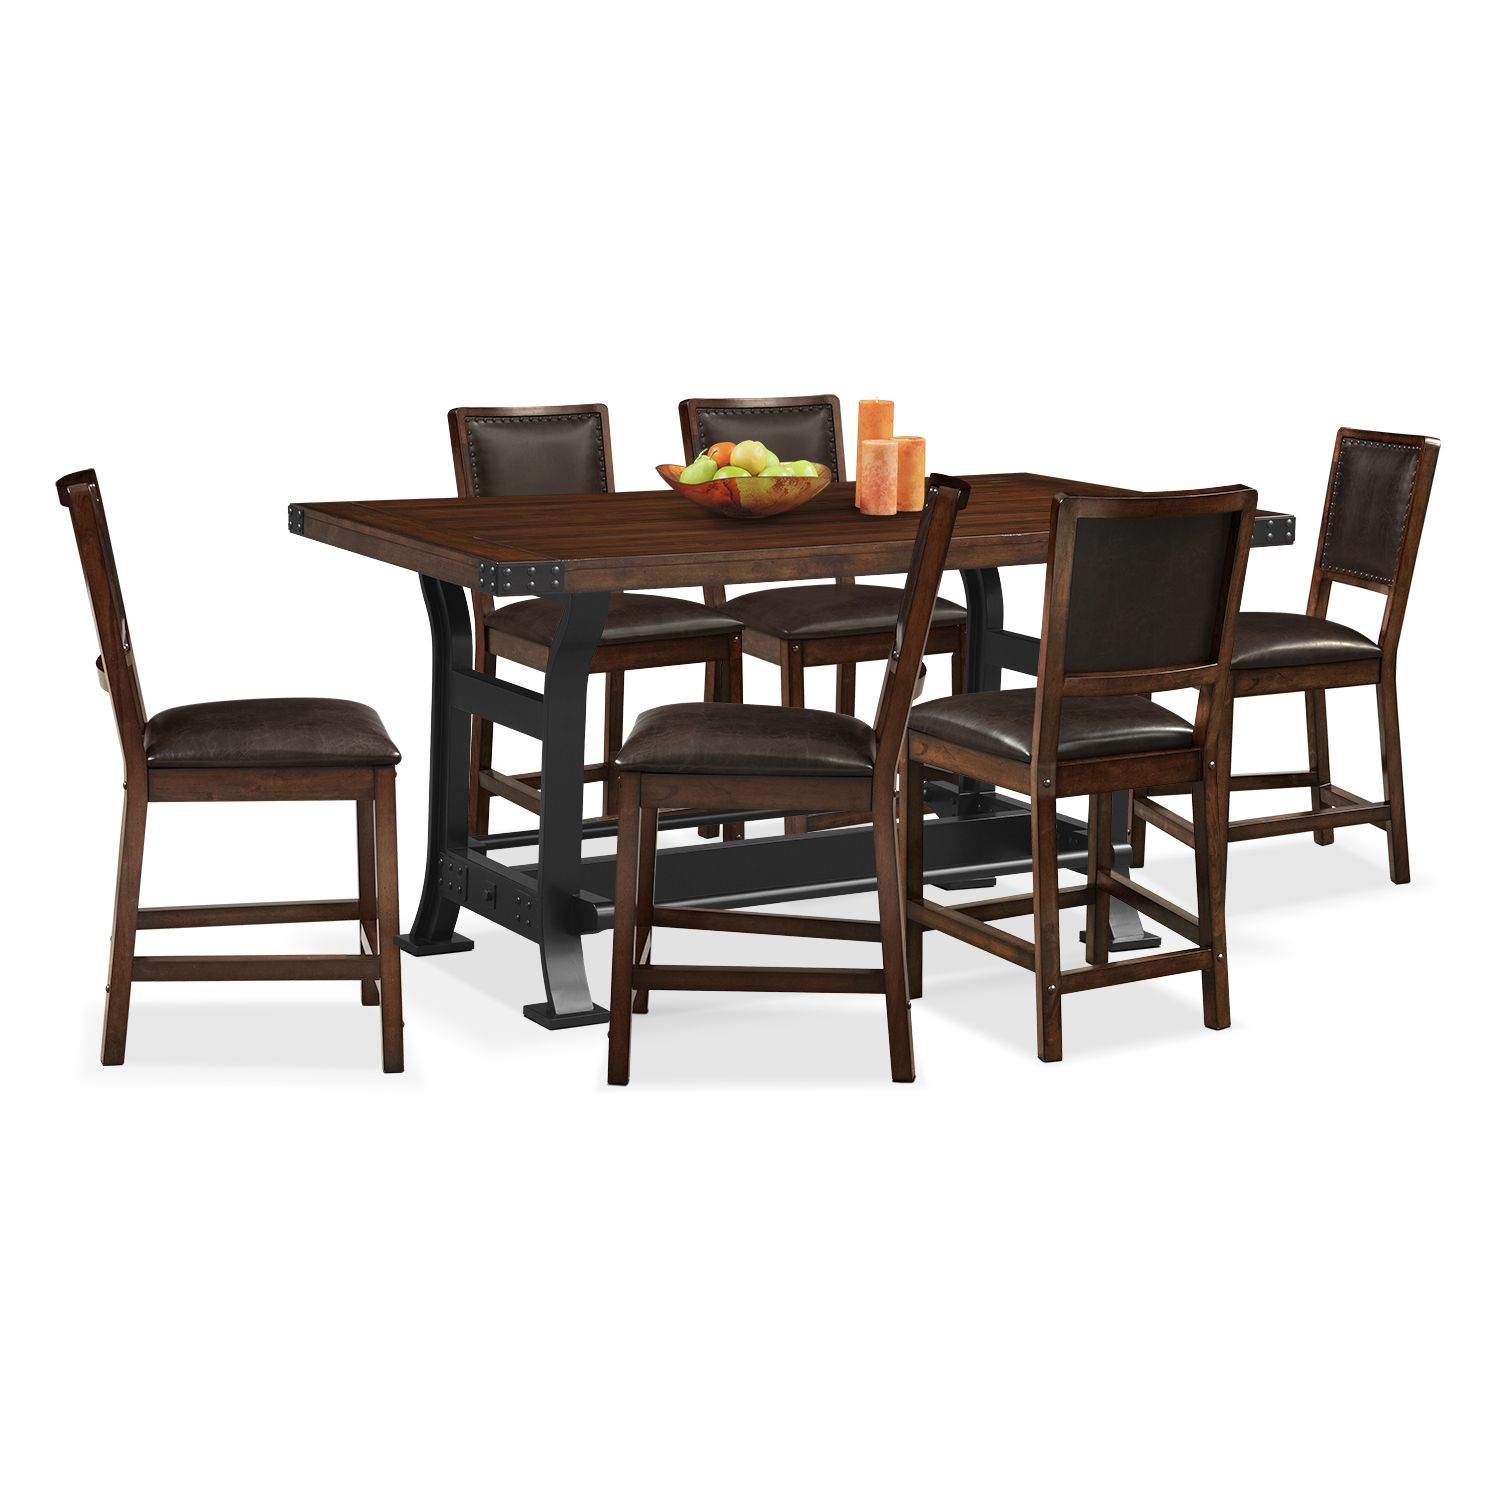 Newcastle CounterHeight Dining Table and 6 Side Chairs